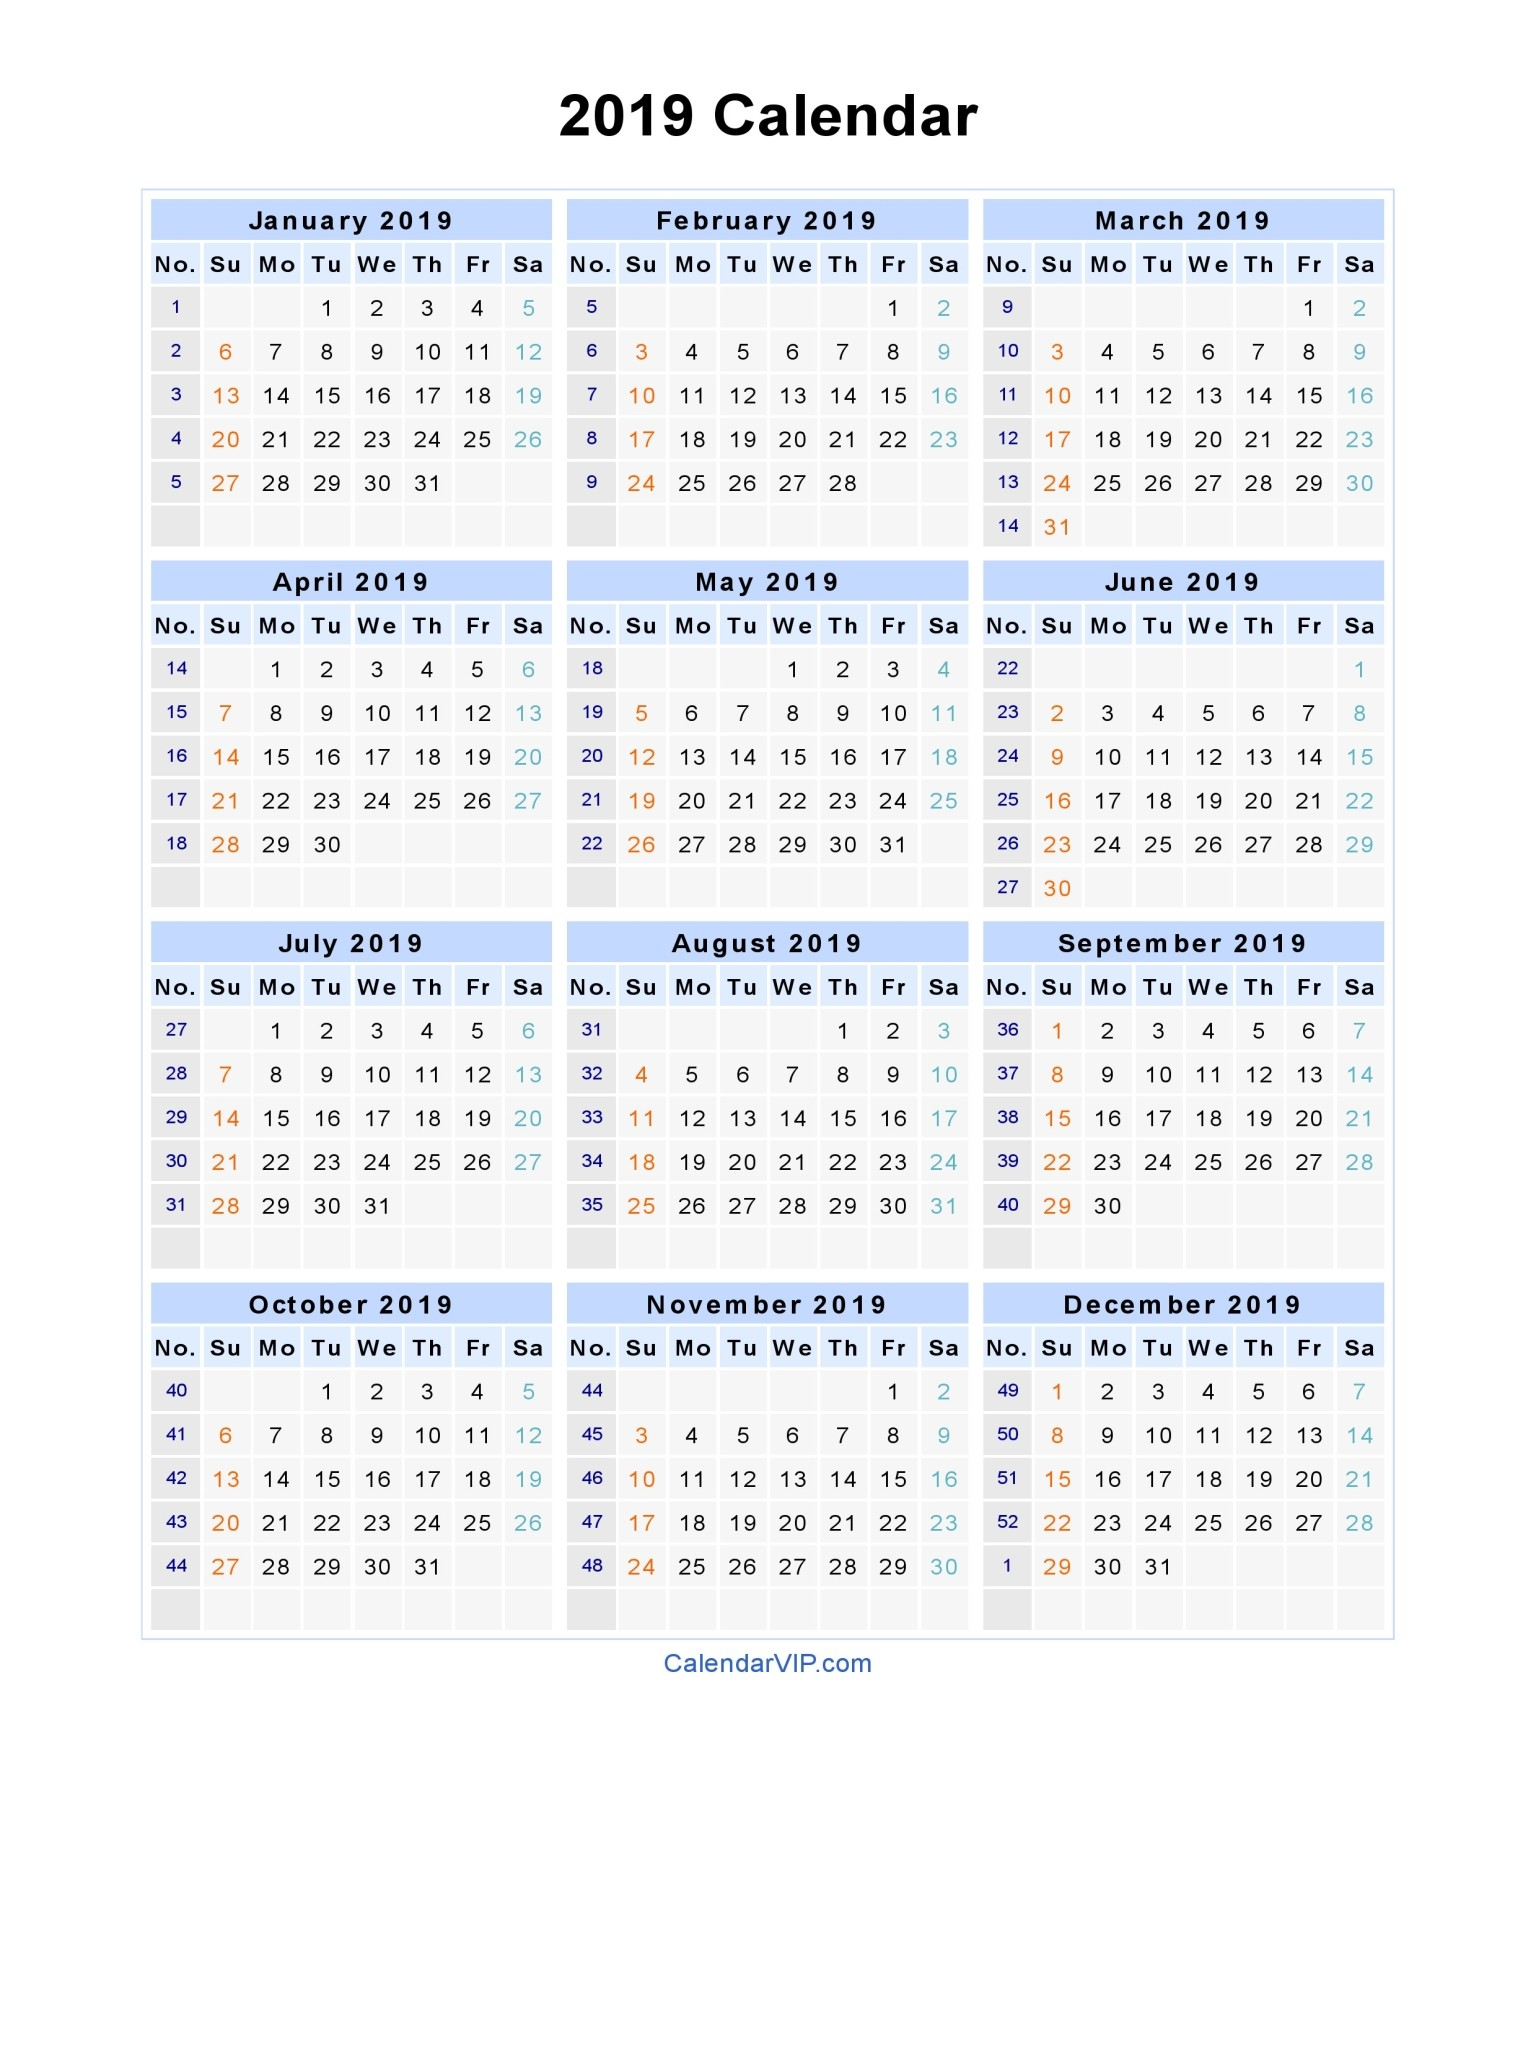 March 2019 Calendar Uk Printable Más Actual 2019 Calendar Template Excel Uk Of March 2019 Calendar Uk Printable Más Actual Sat Test Dates Your Best Test Date 2017 2018 2019 2020